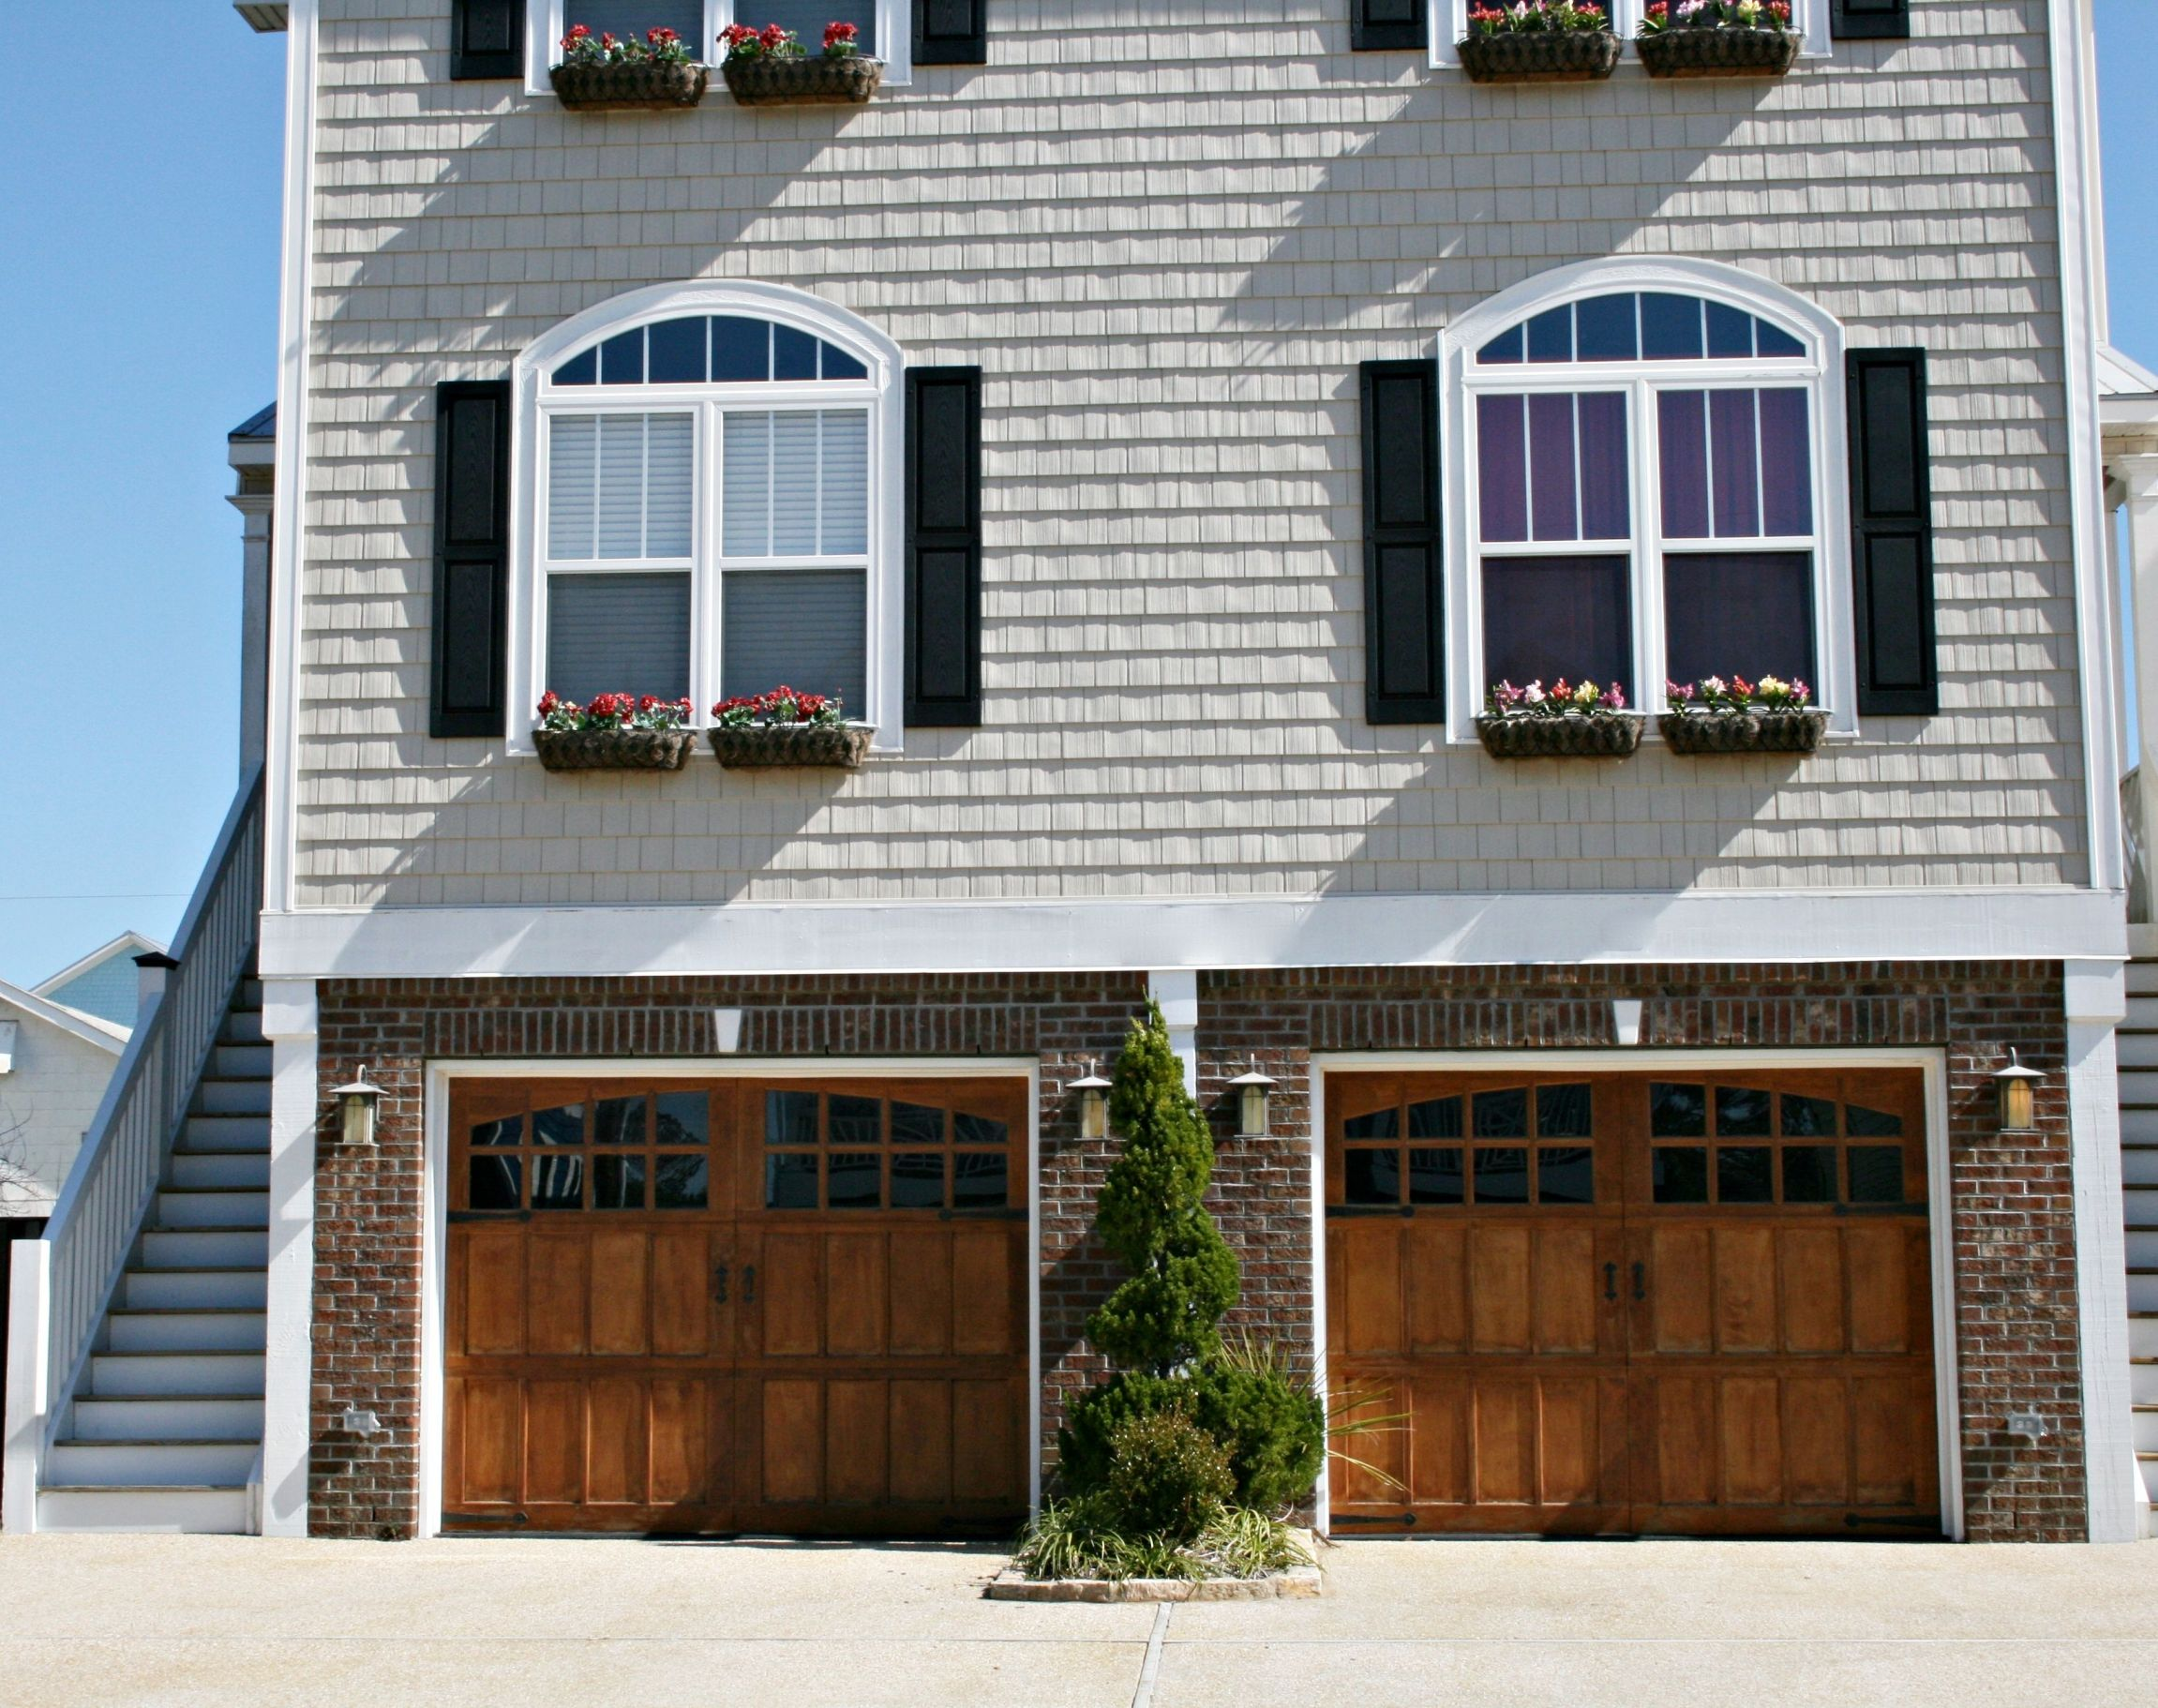 Residential Garage Doors in Iowa City, IA Come in Several Attractive Designs and Materials